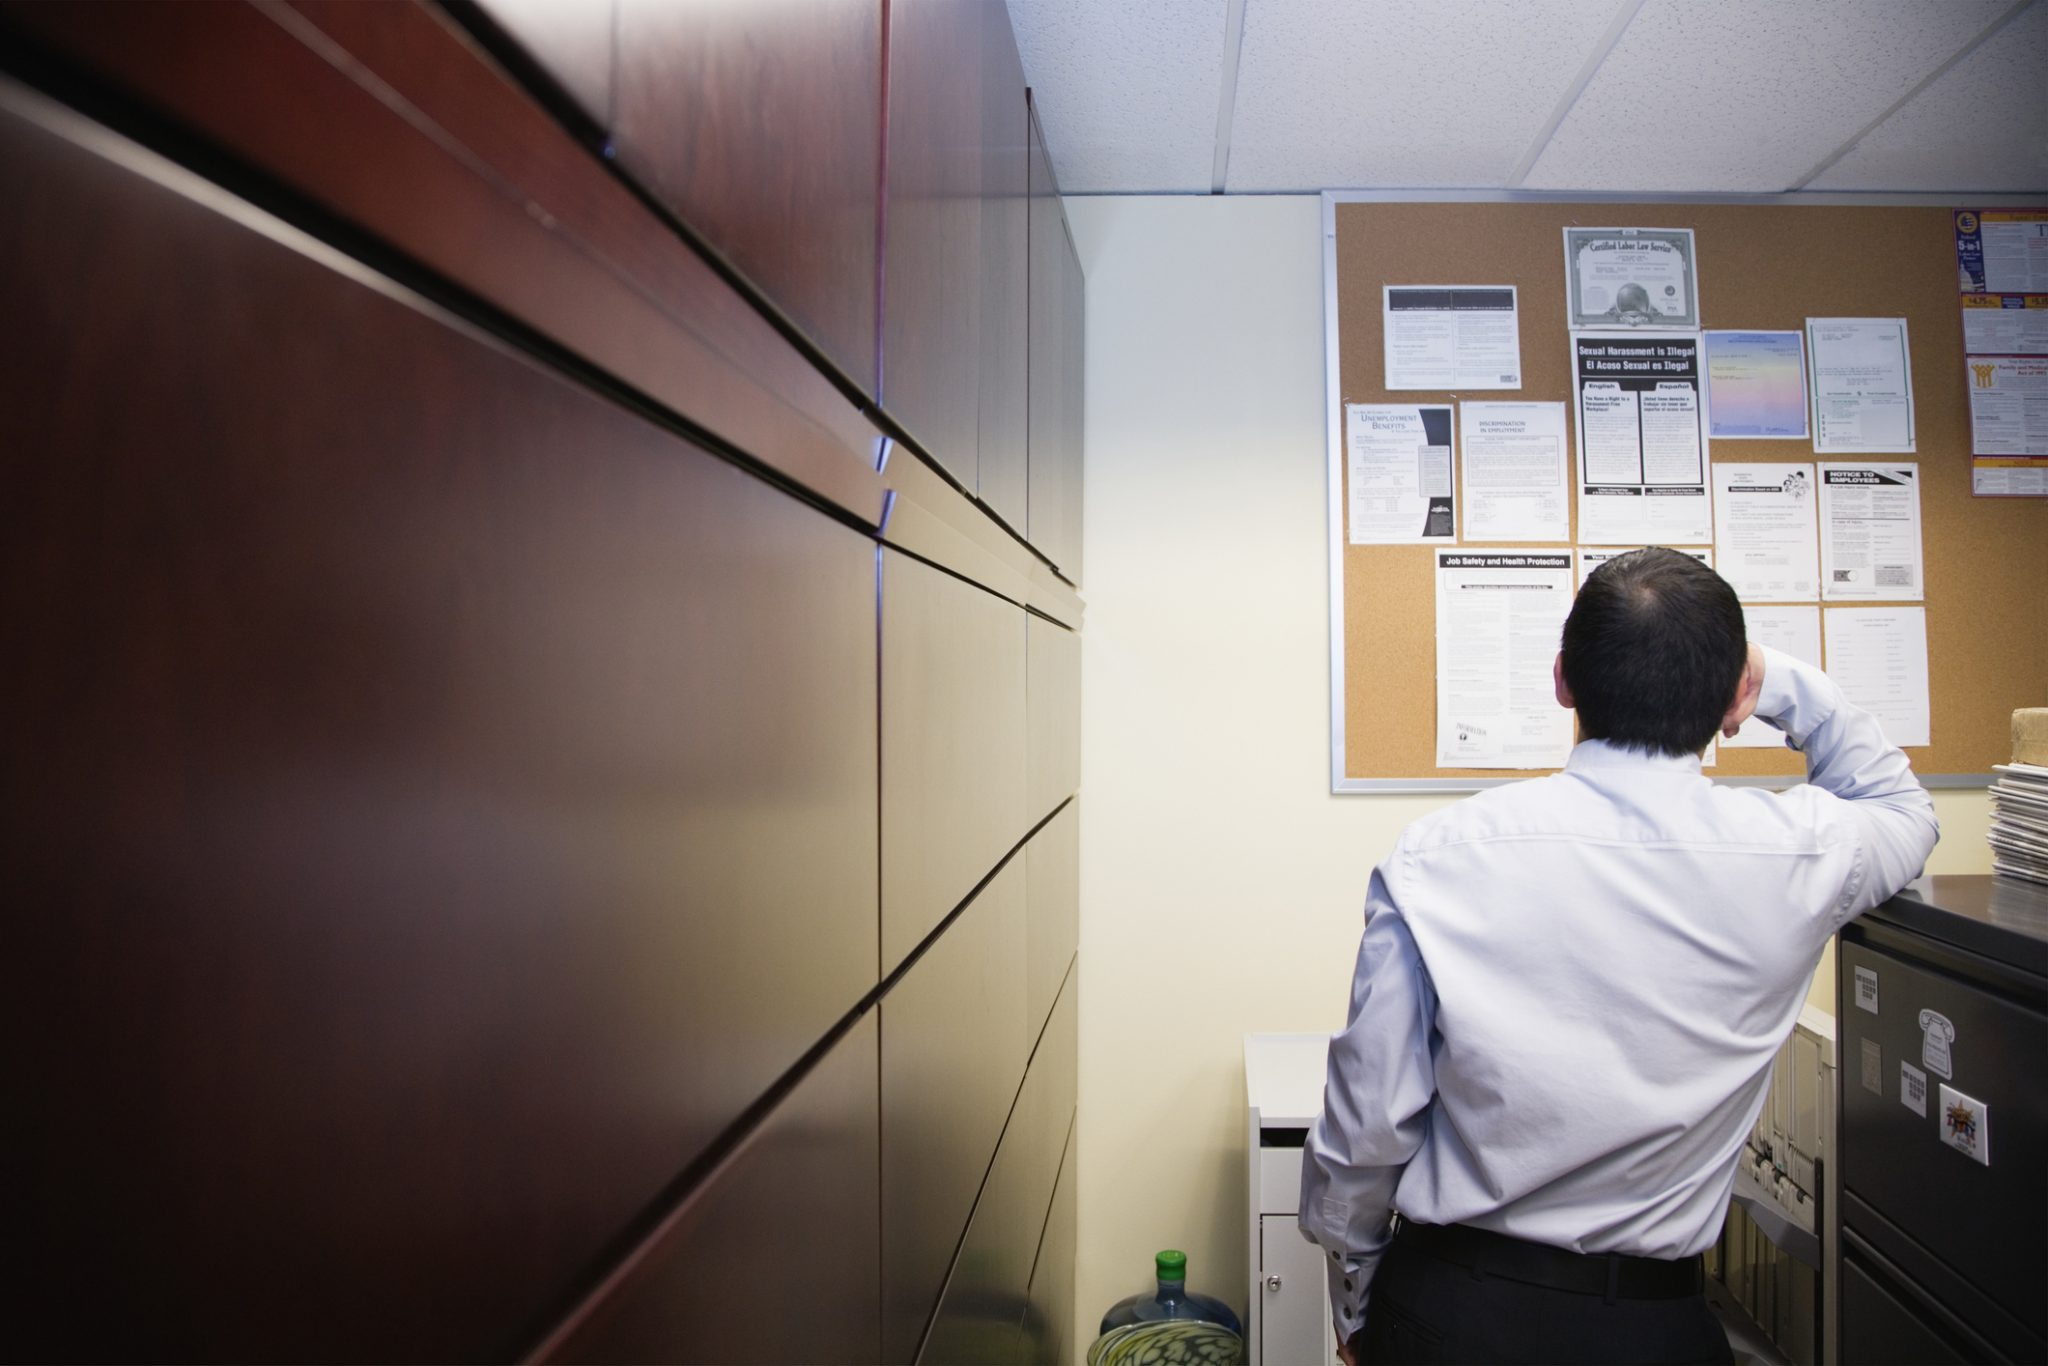 Businessman in a work place with posters on a cork board